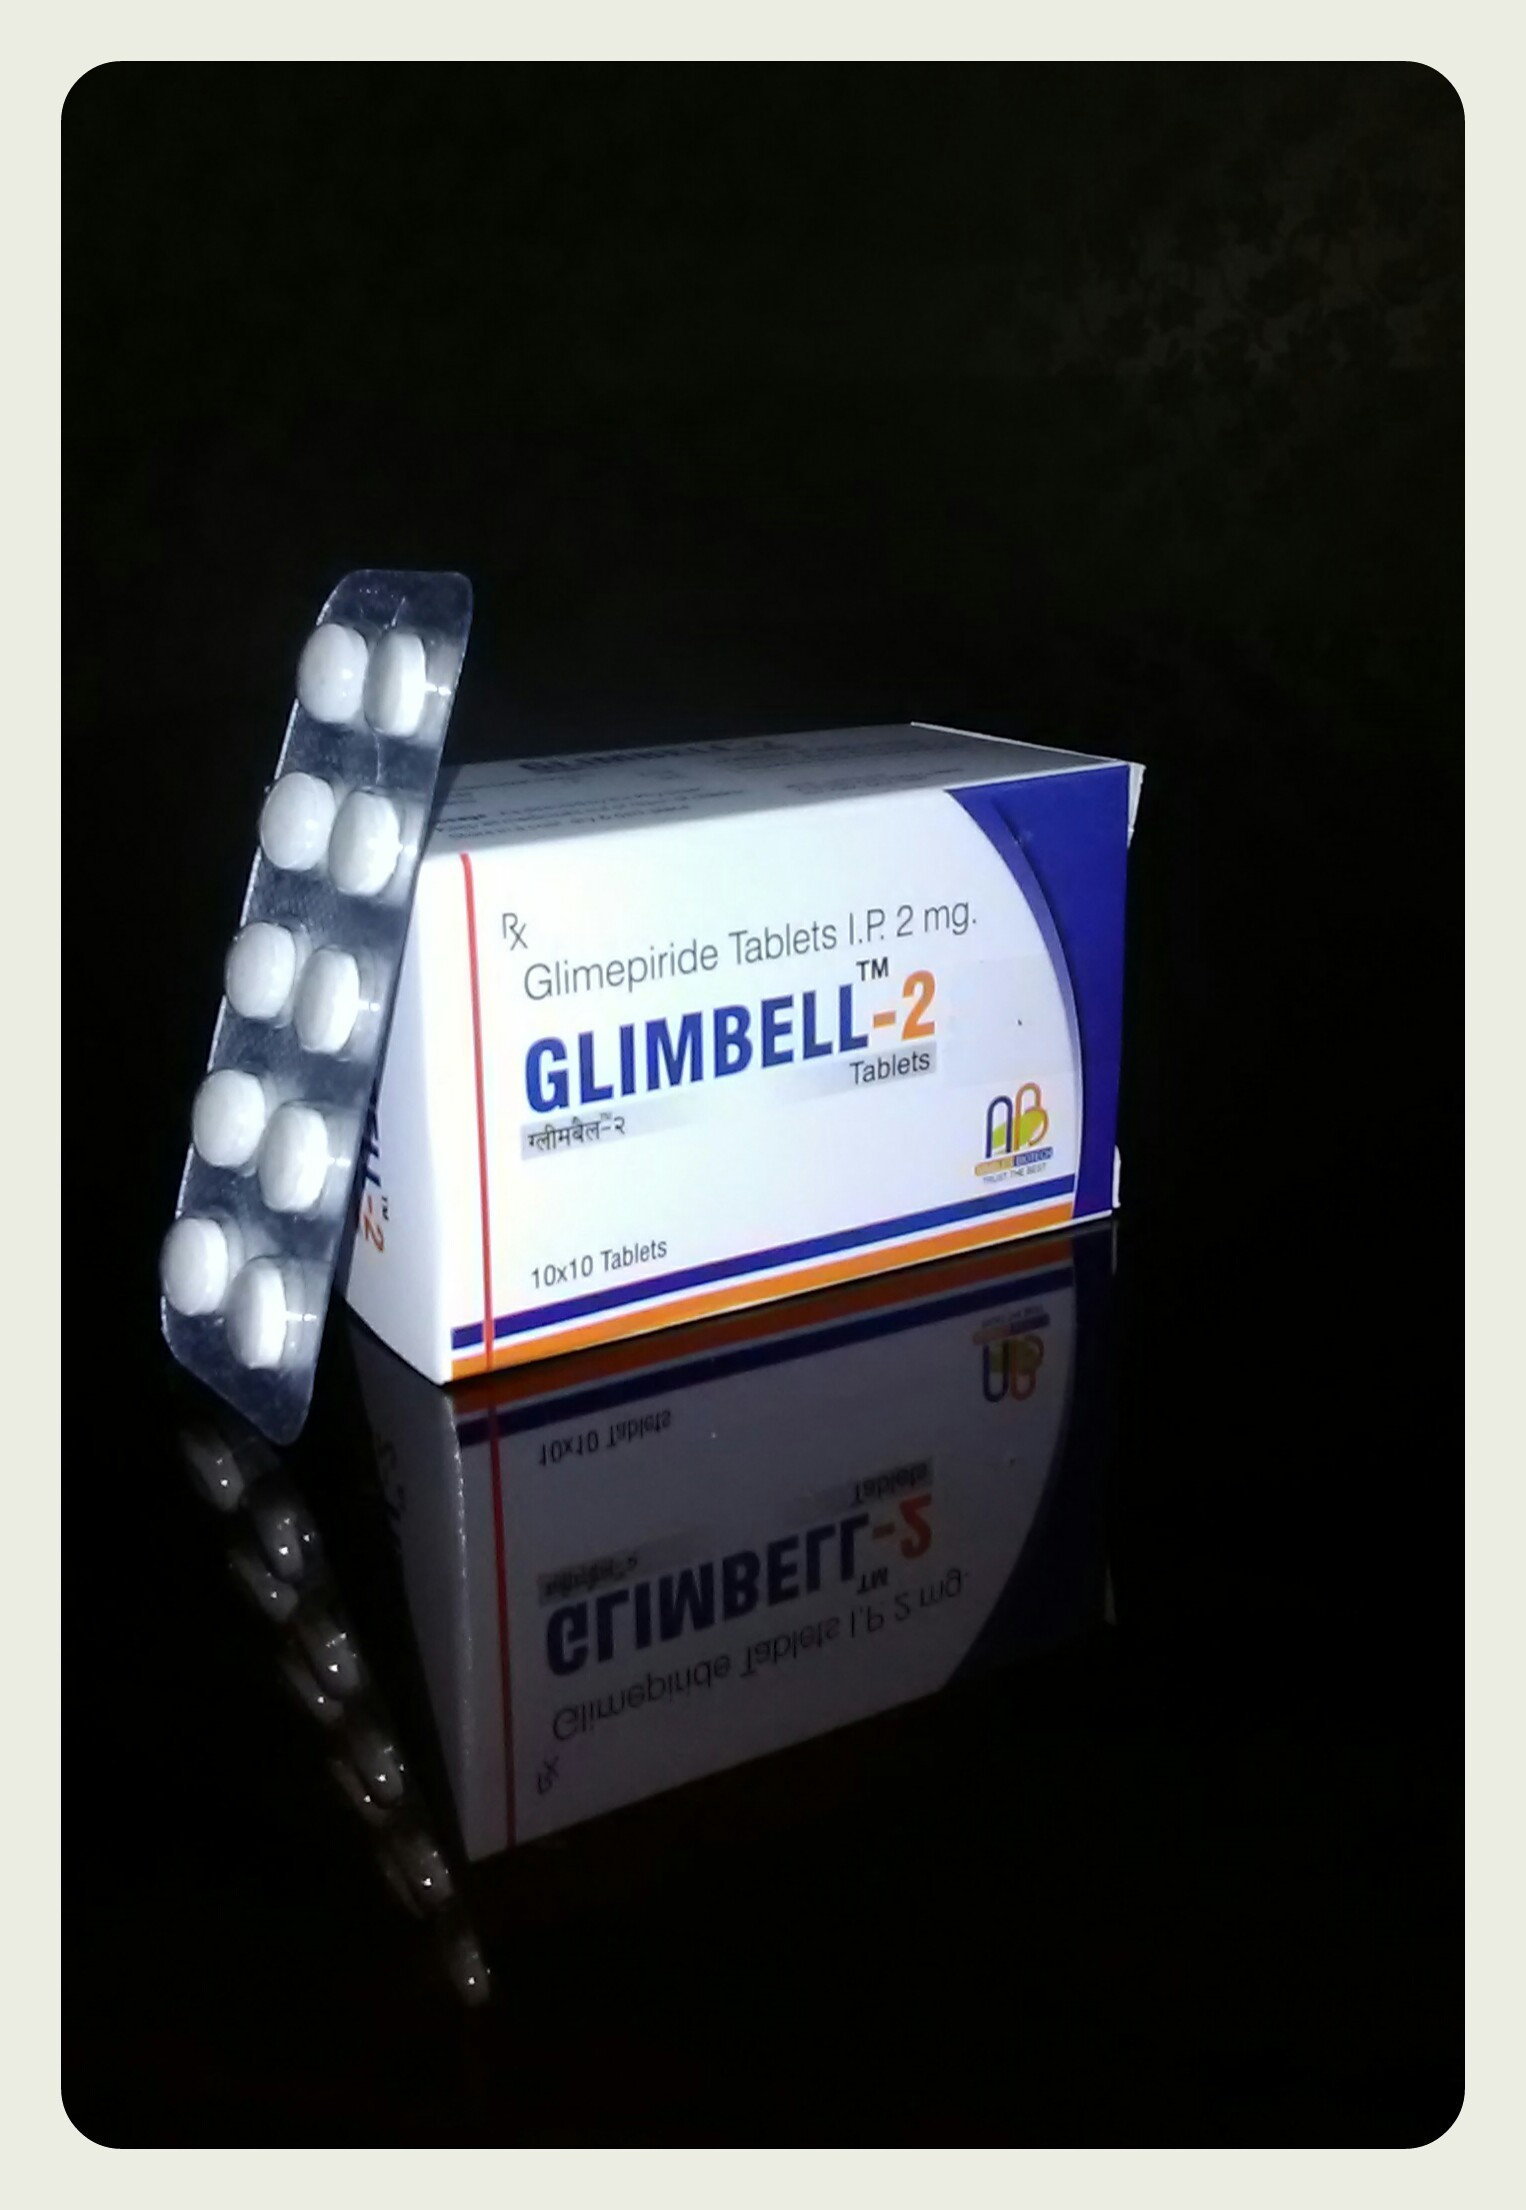 Glimepride Tablets